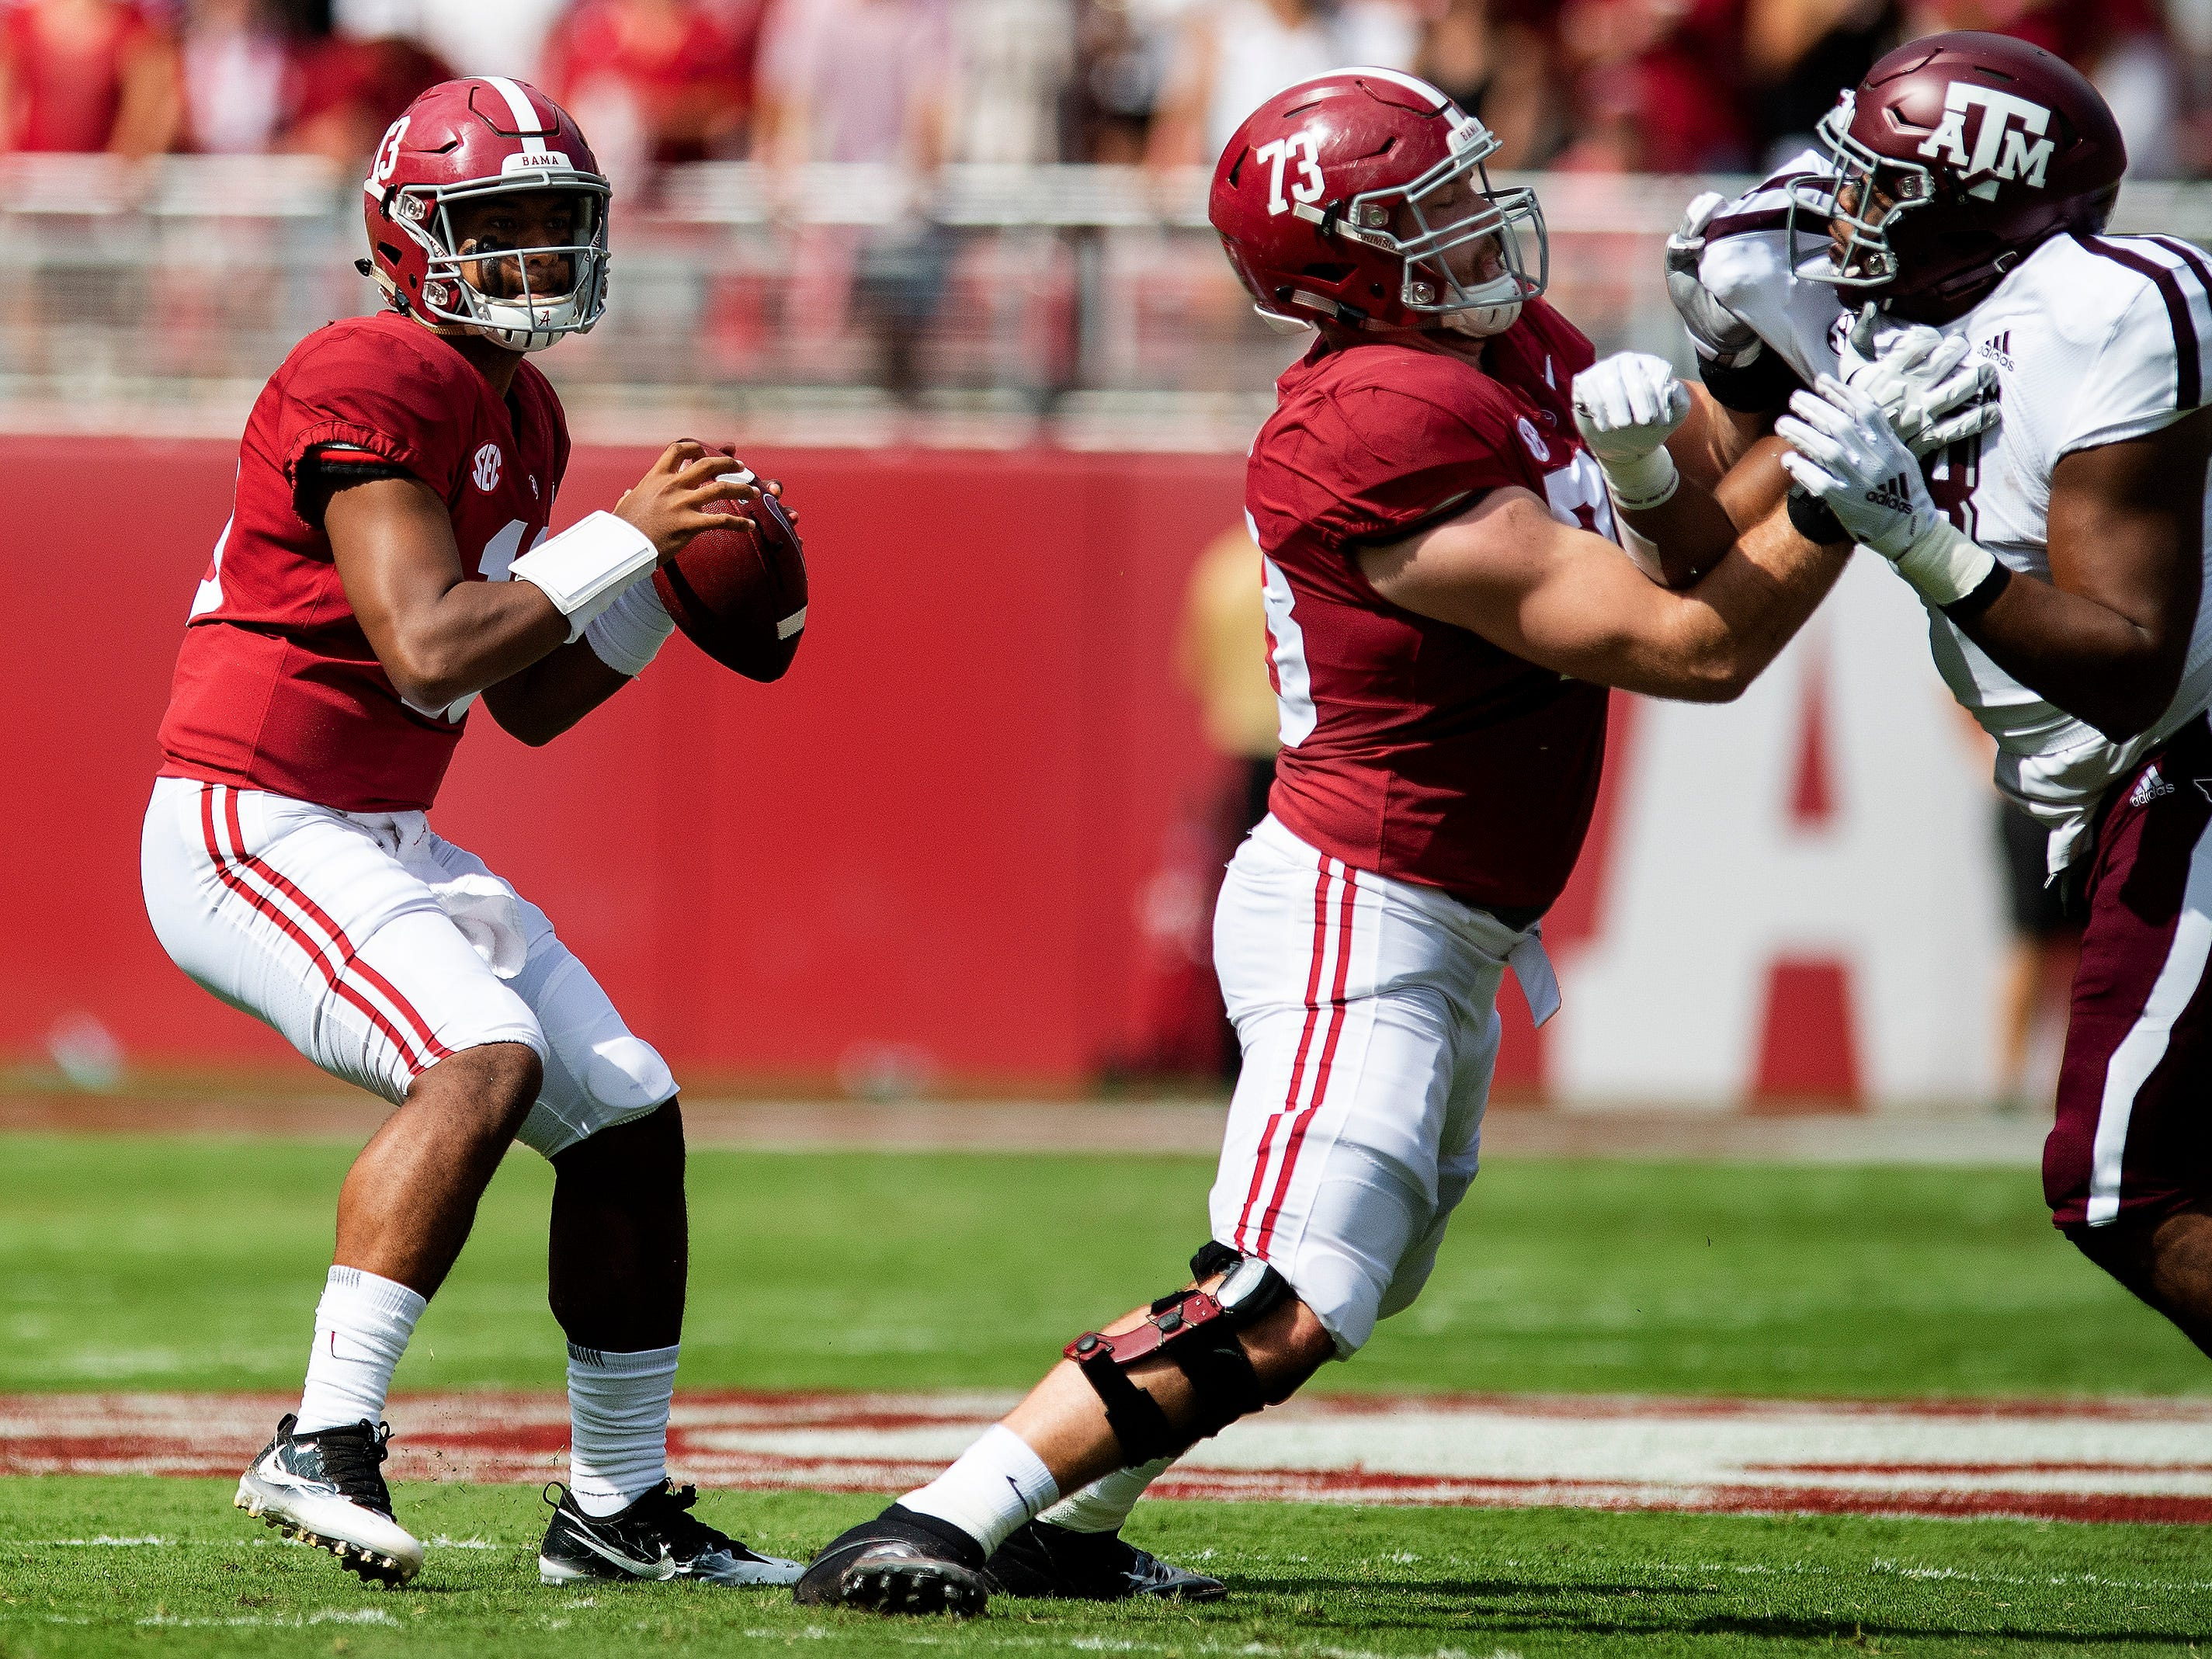 Alabama quarterback Tua Tagovailoa (13) passes behind the blocking of offensive lineman Jonah Williams (73) in first half action in Tuscaloosa, Ala., on Saturday September 22, 2018.